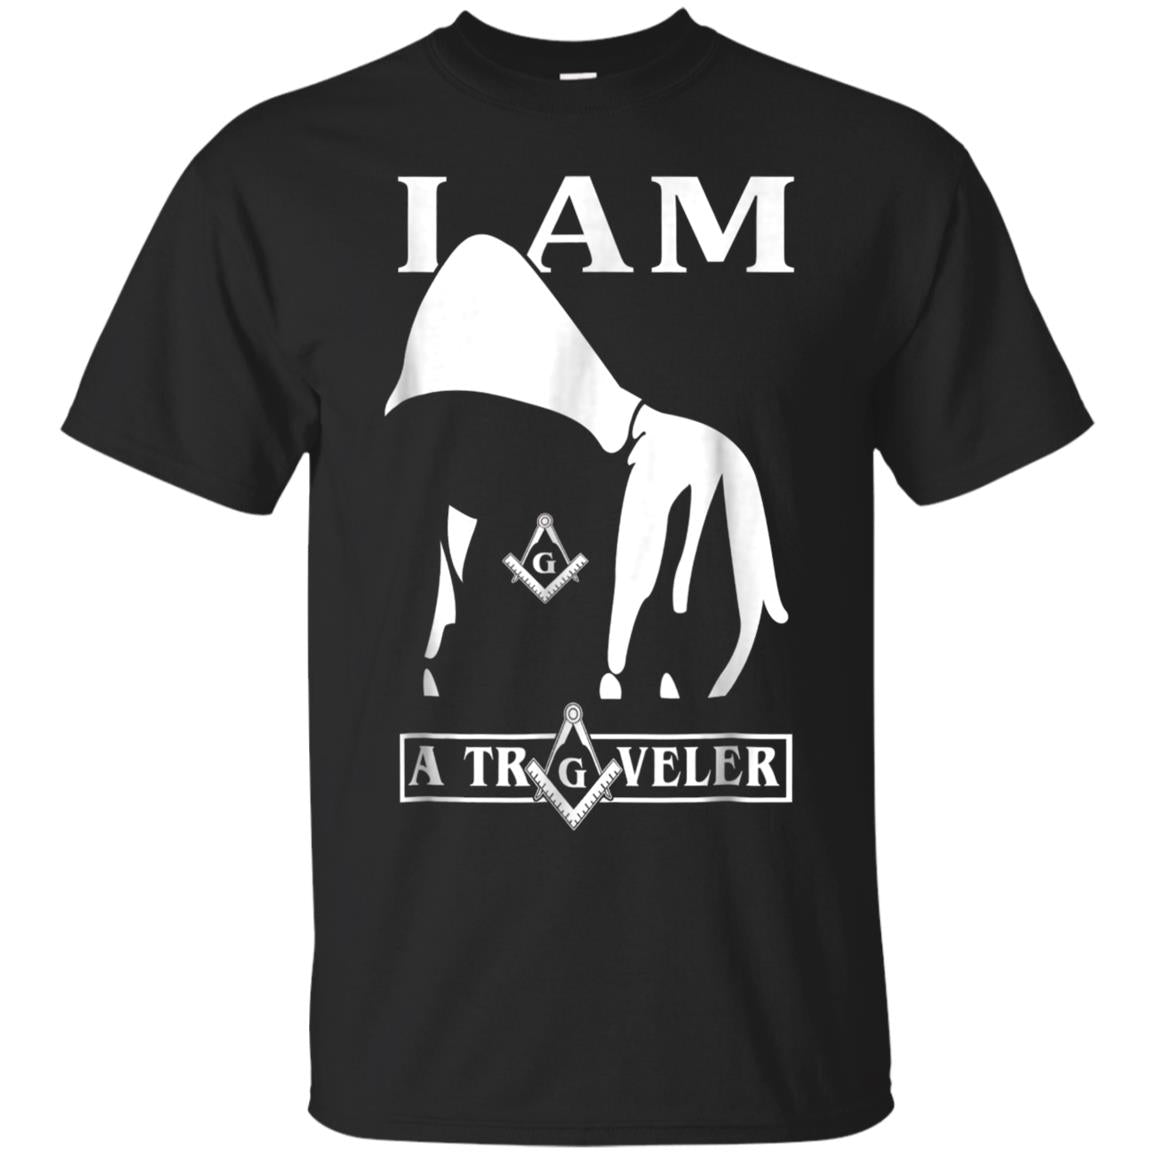 The Masonic Store Freemason - I AM TRAVERLER T-Shirt Gift 99promocode